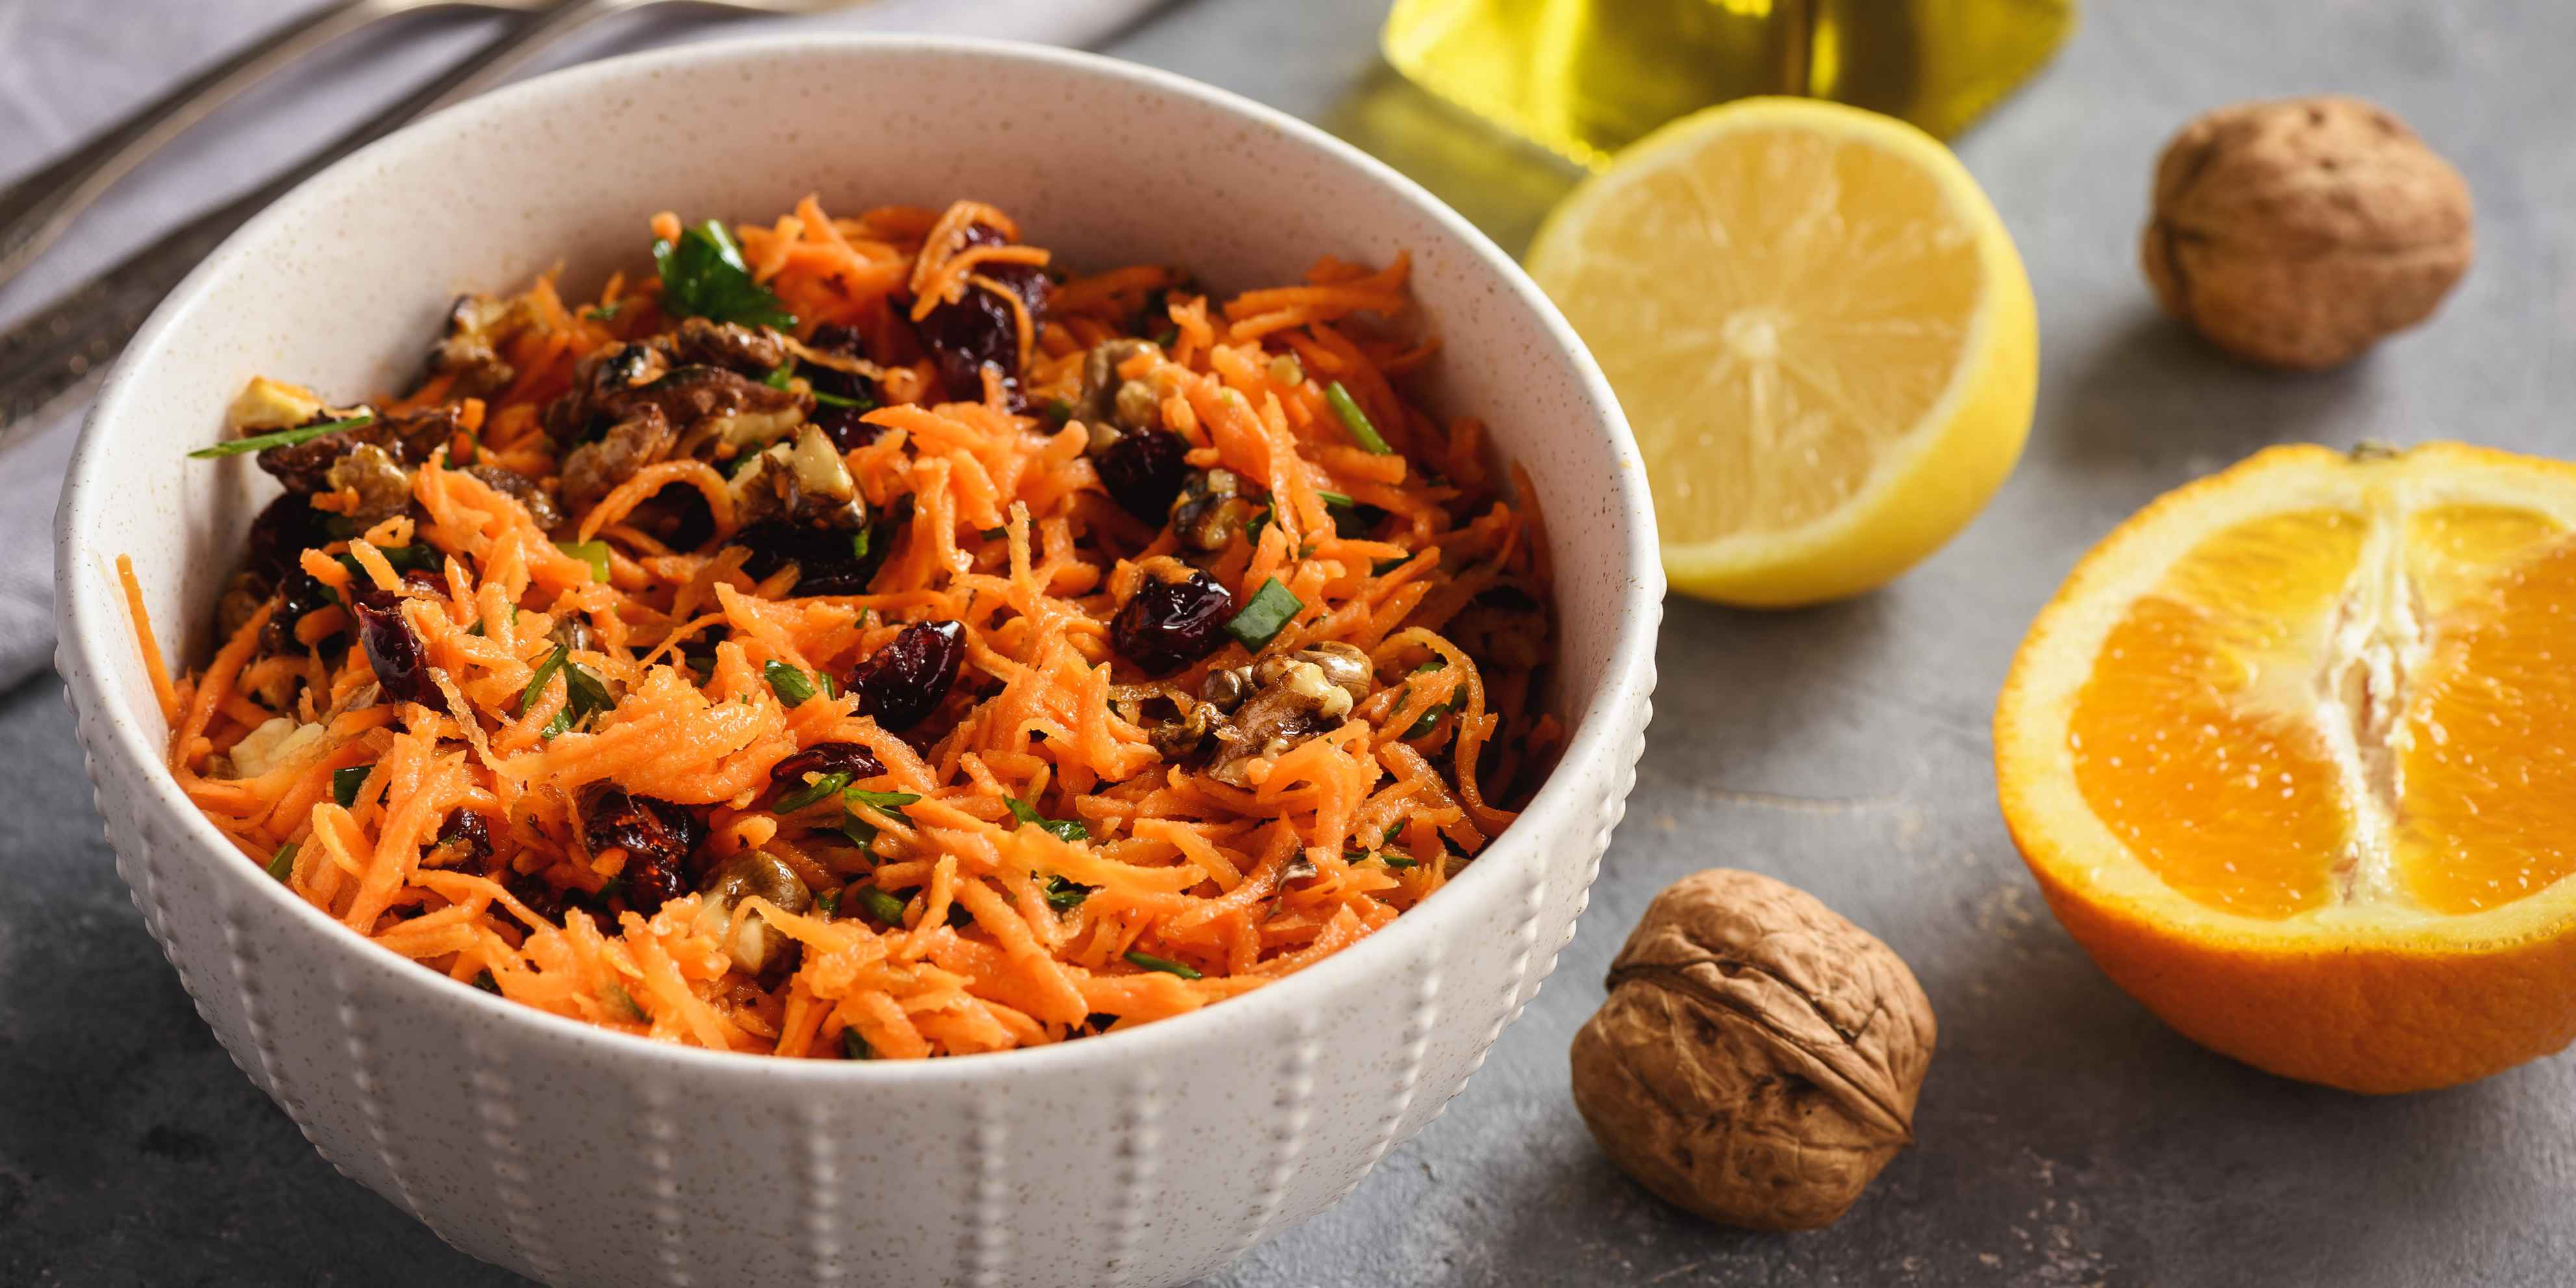 Turmeric-Curried Golden Carrot Slaw